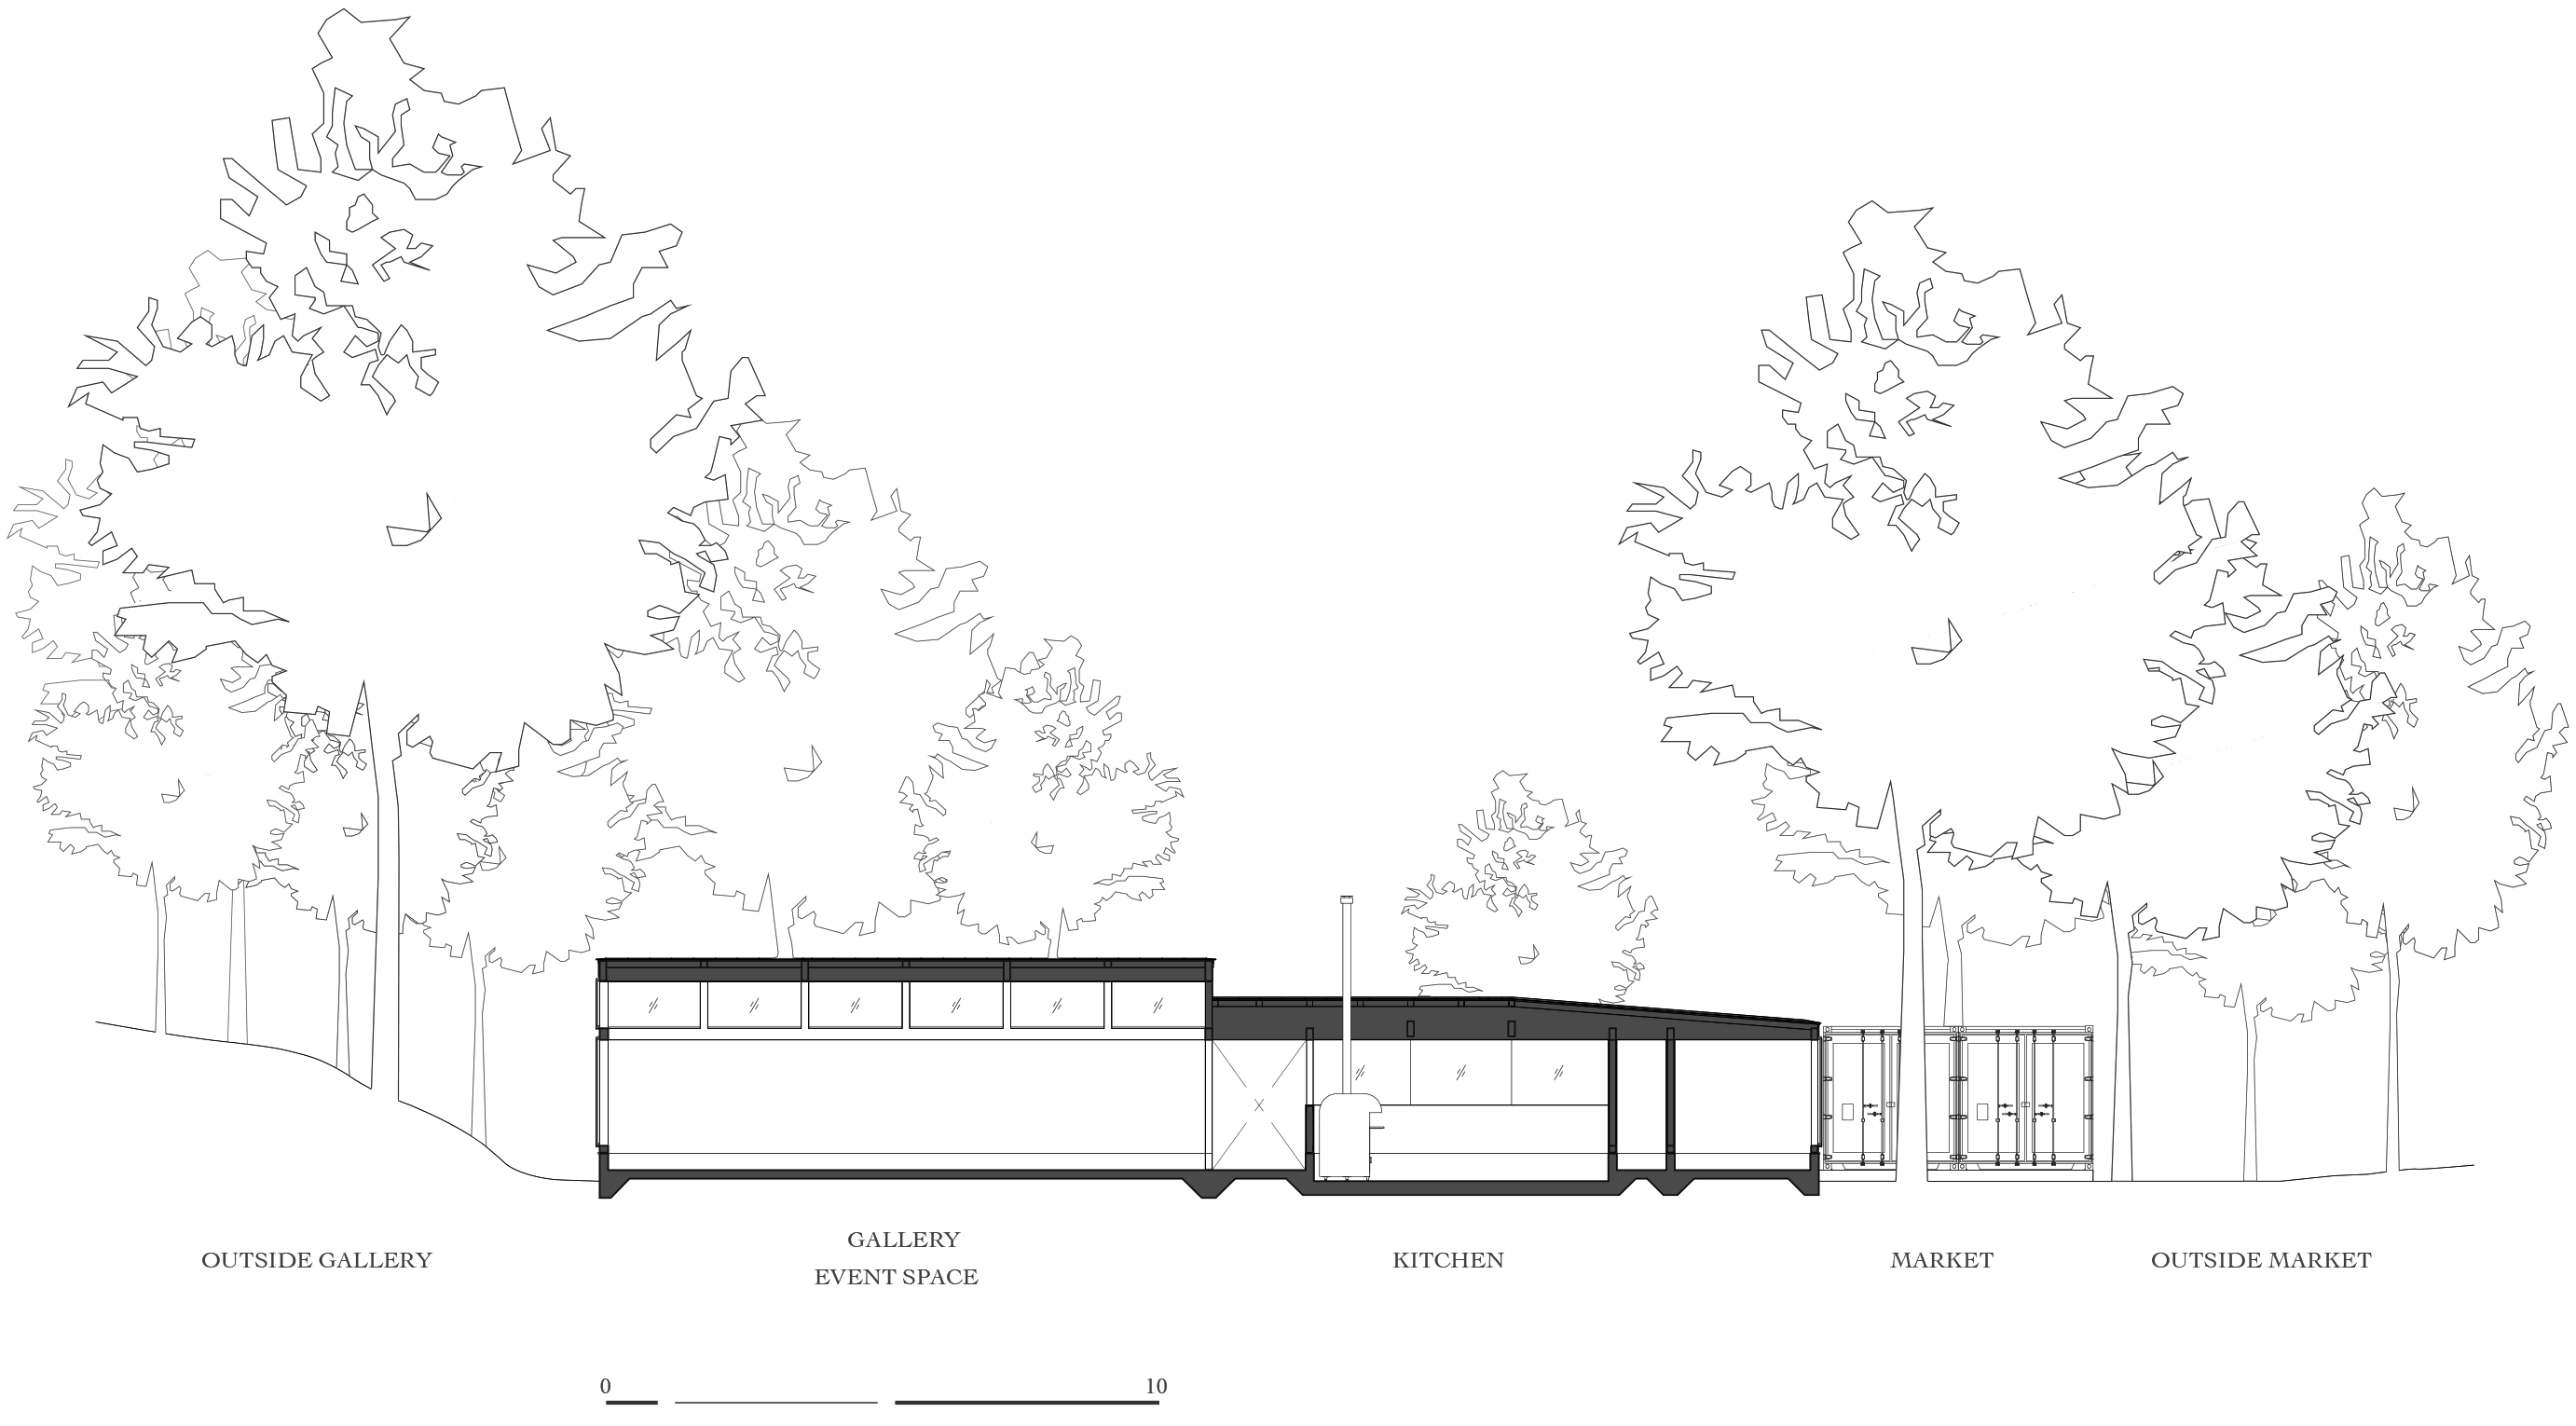 architectural tree drawing at getdrawings com free for personal